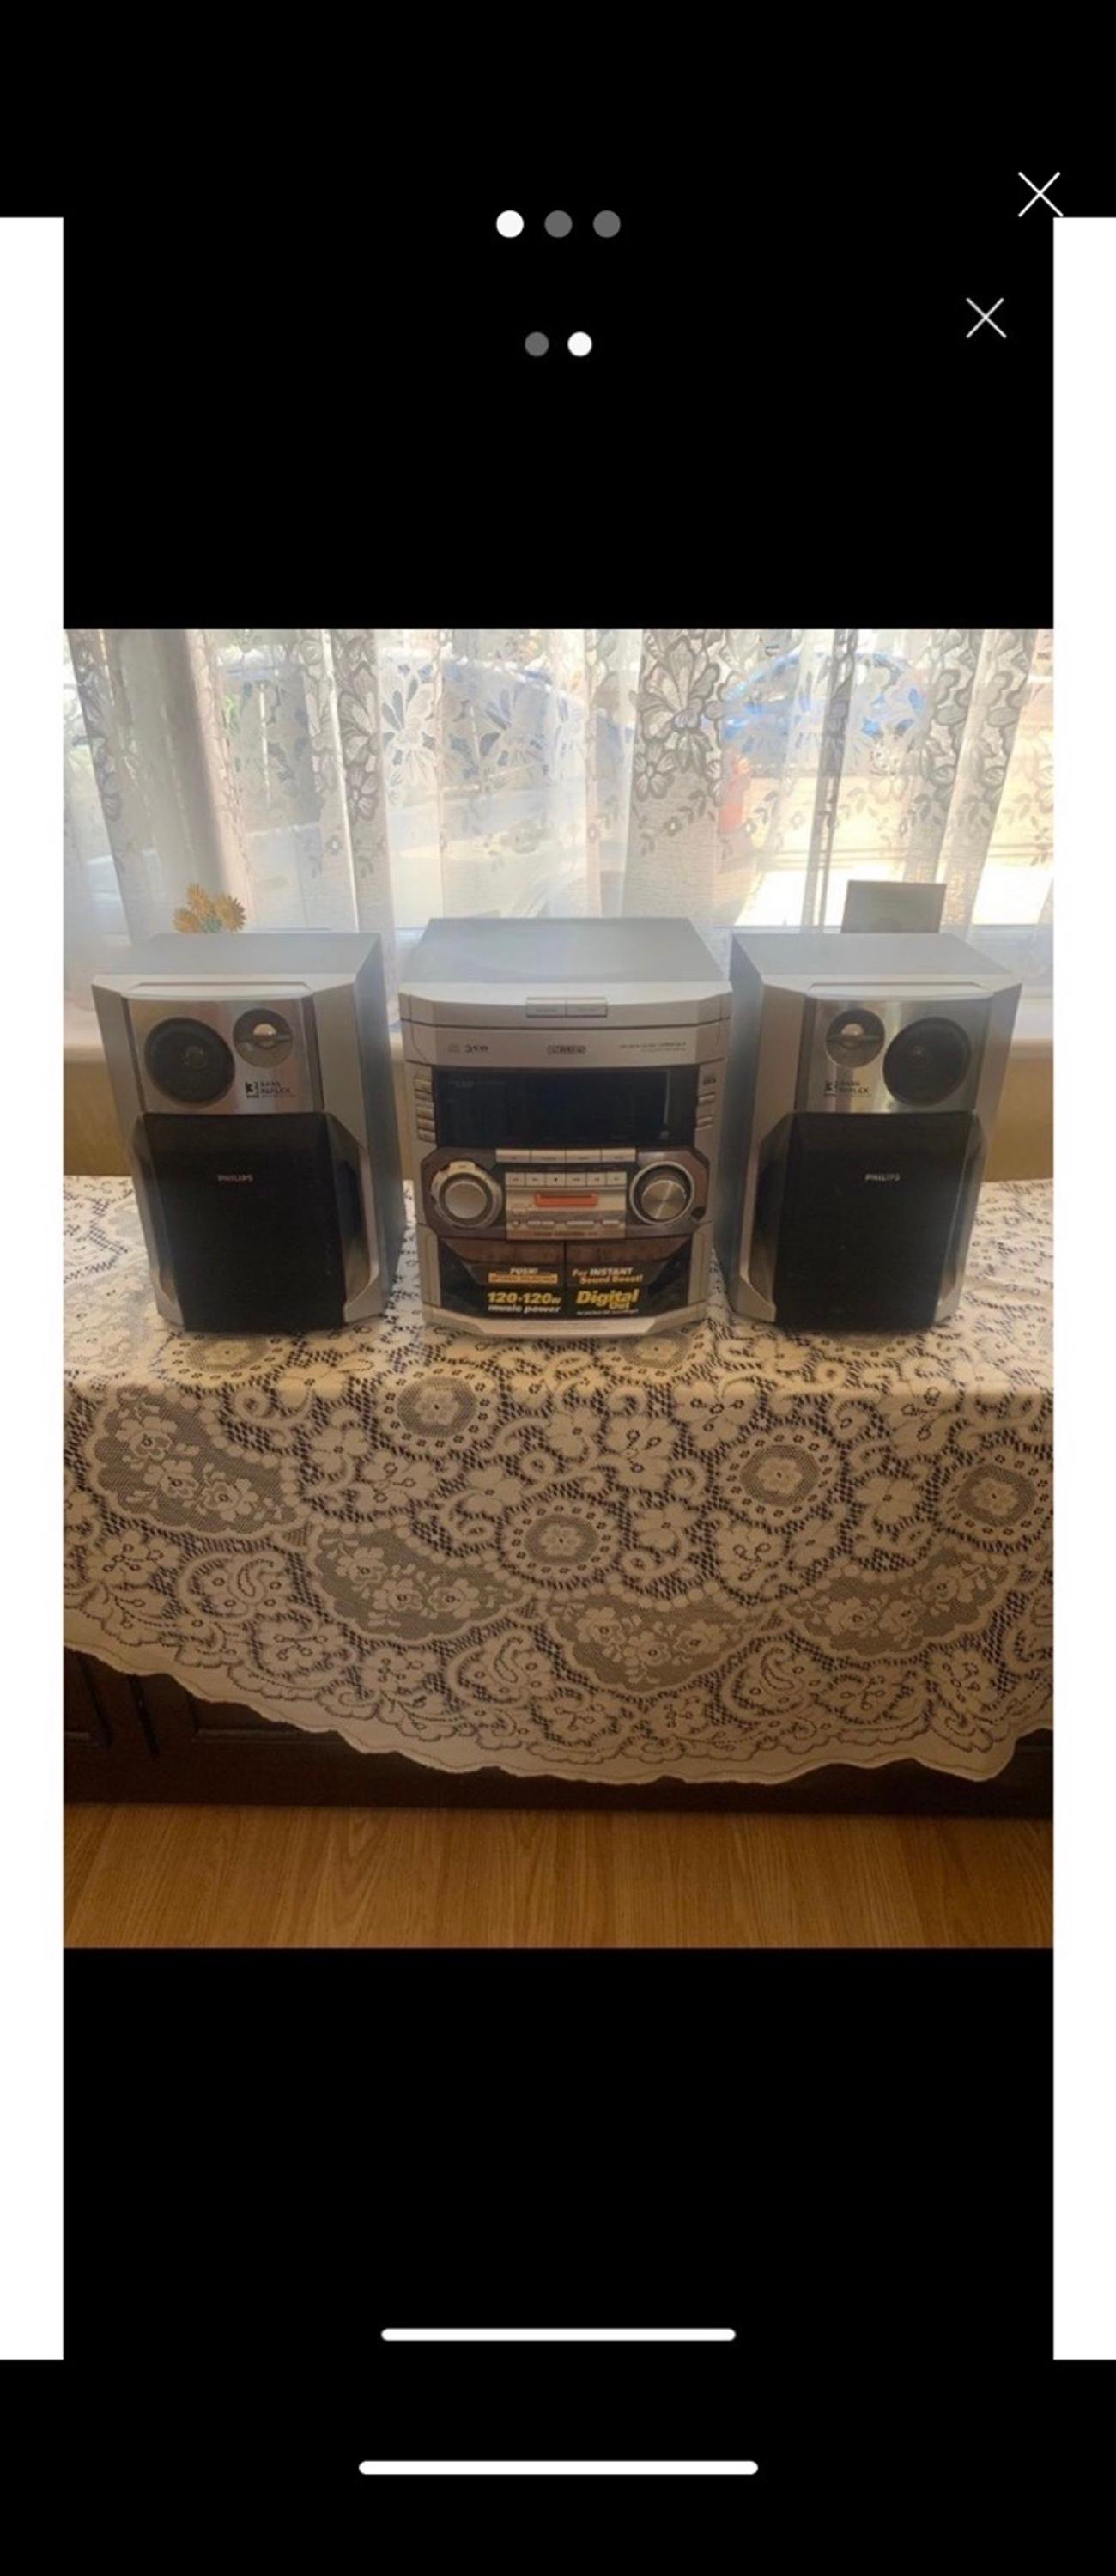 Philips hi-fi system 3 cd muti changer Twin cassette 120x120 watts Very powerful and lovely sound Good working condition £25 ono